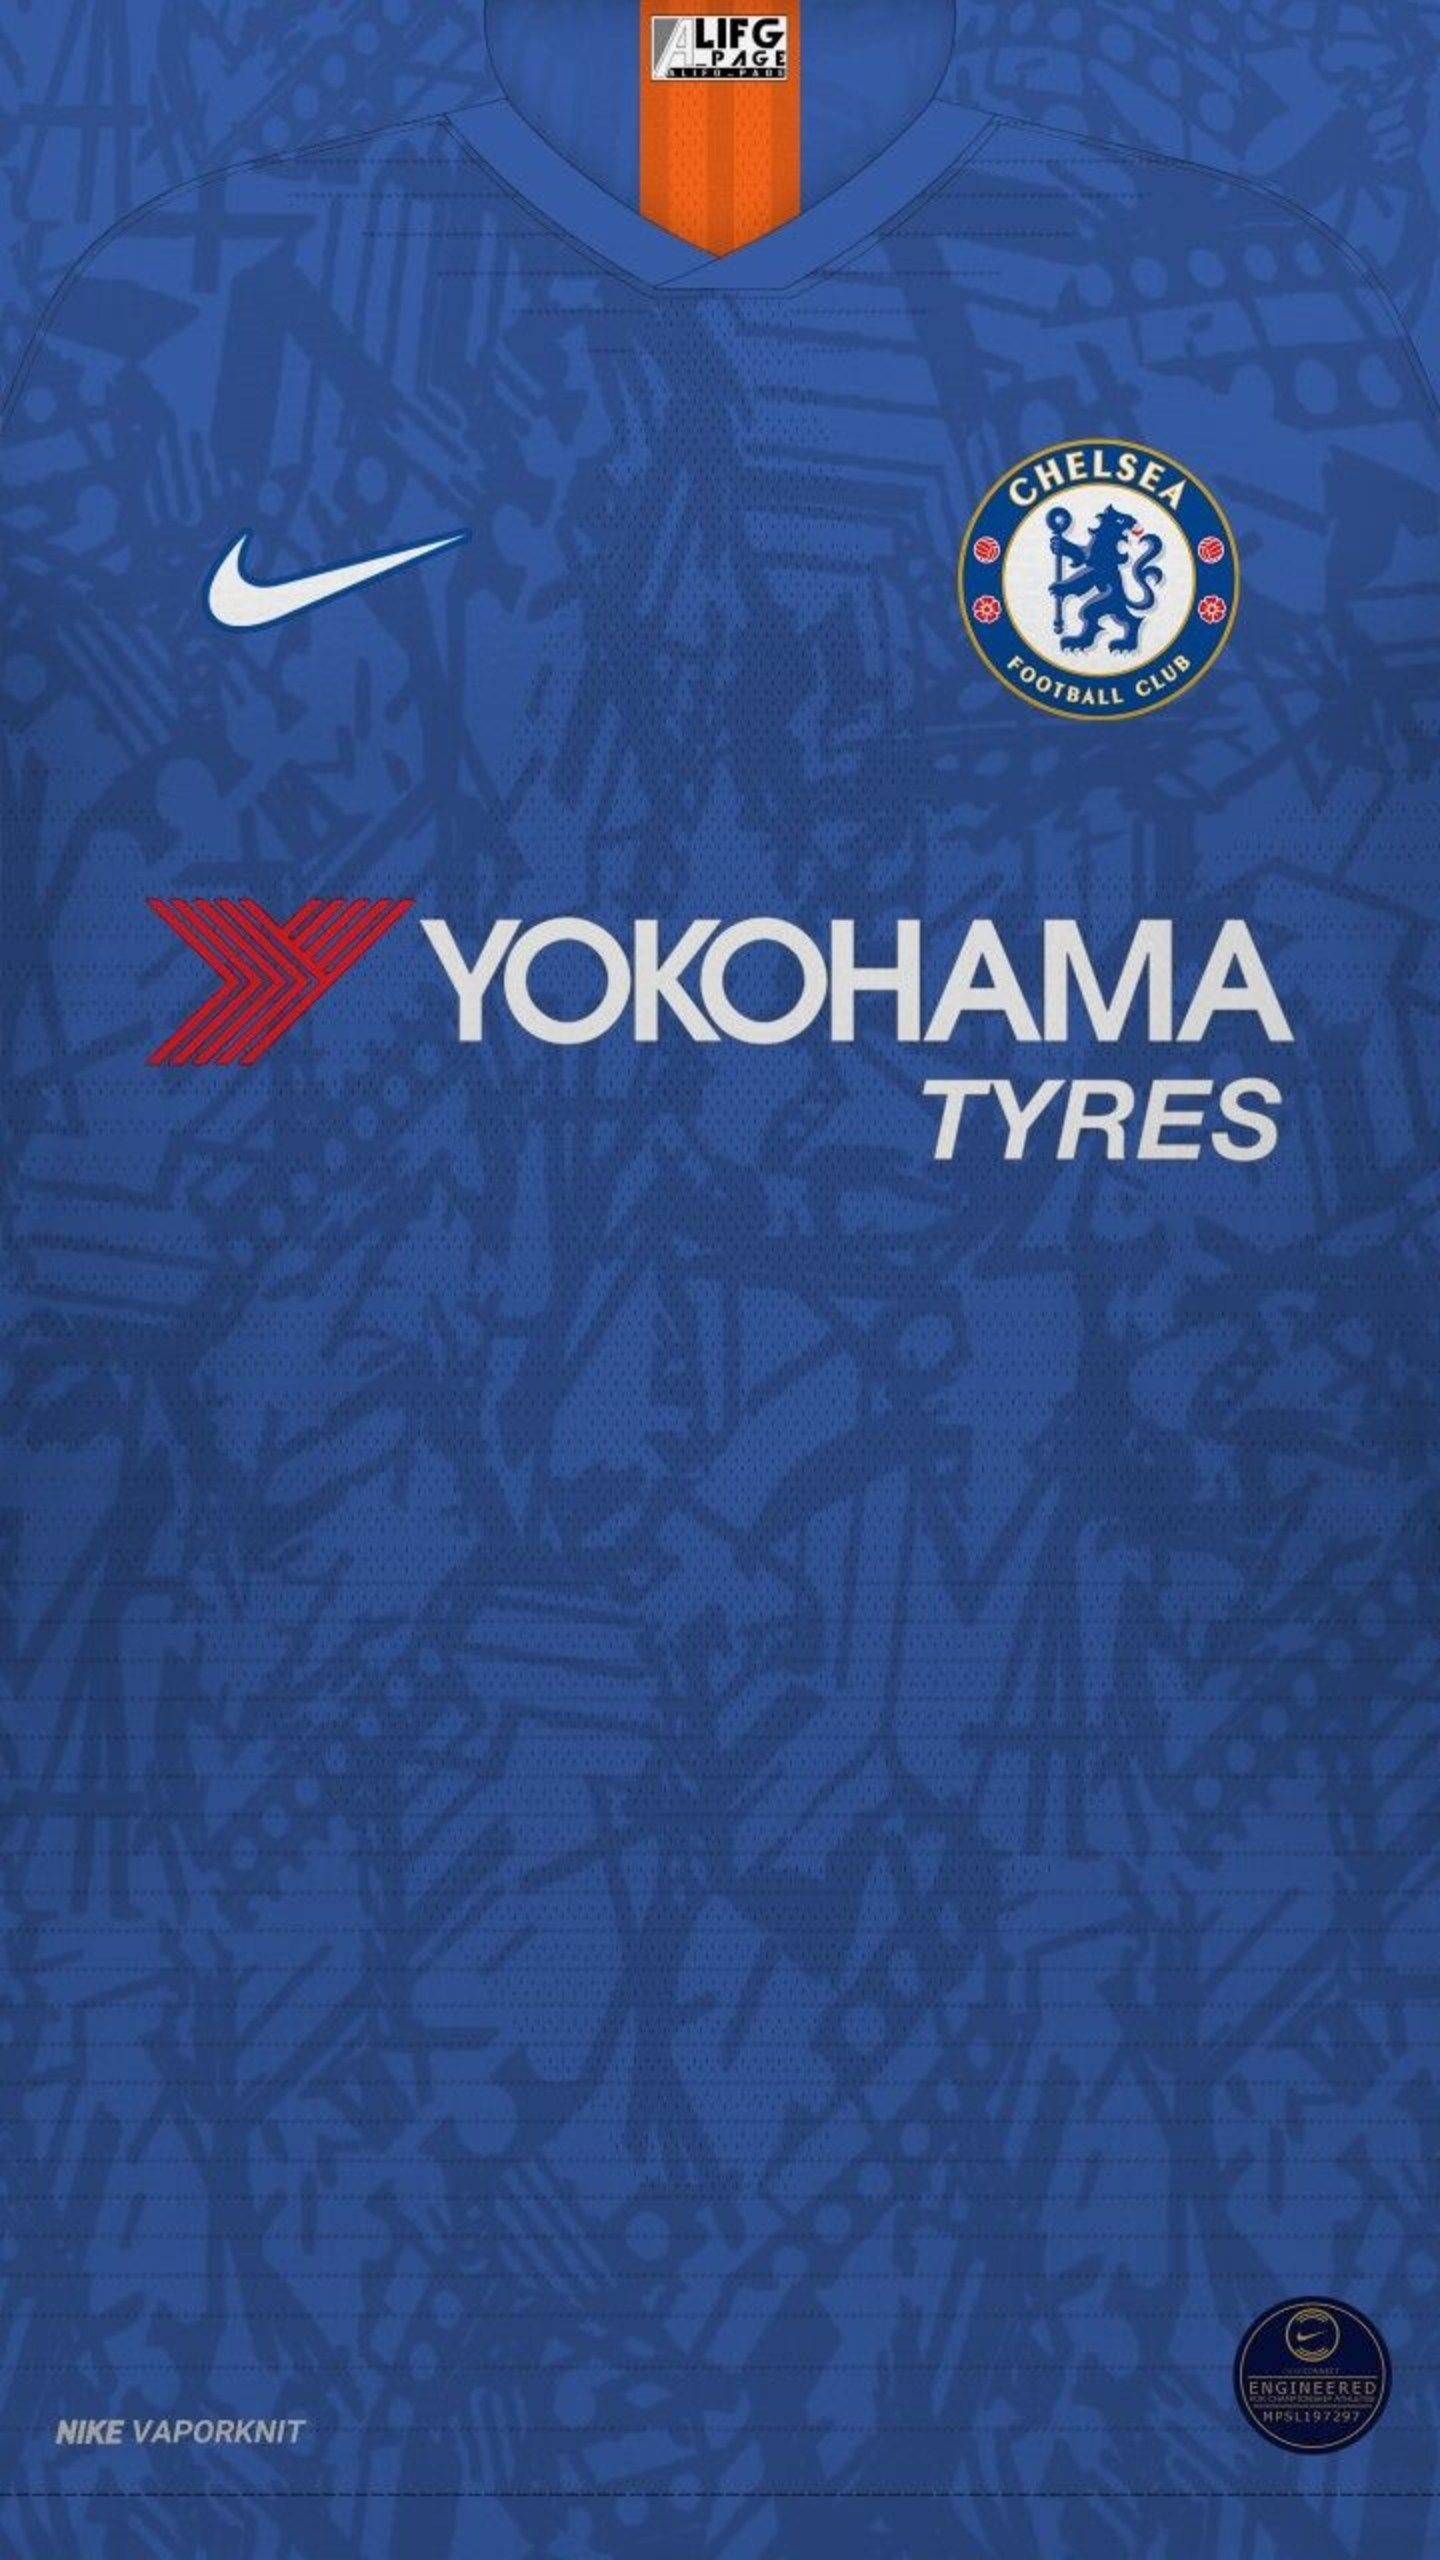 Chelsea 2020 Wallpapers Wallpaper Cave